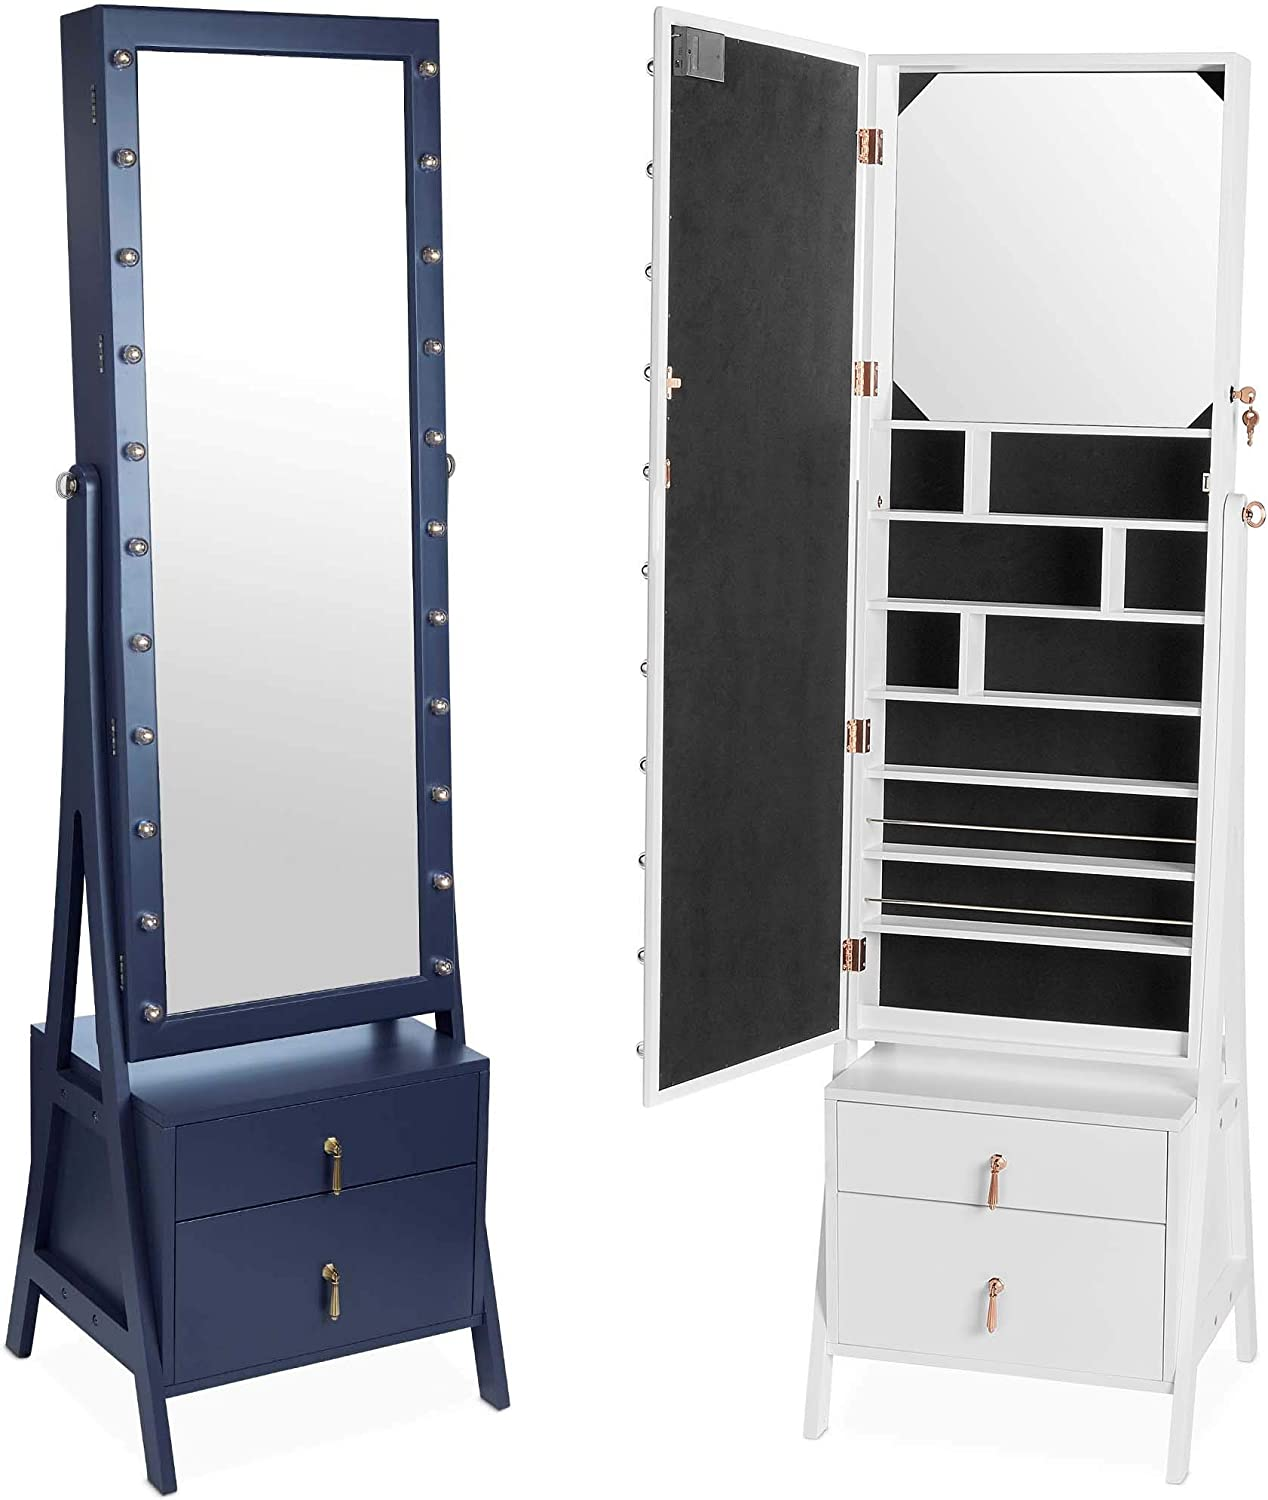 Beautify Jewellery Cabinet Free Standing Lockable With Storage